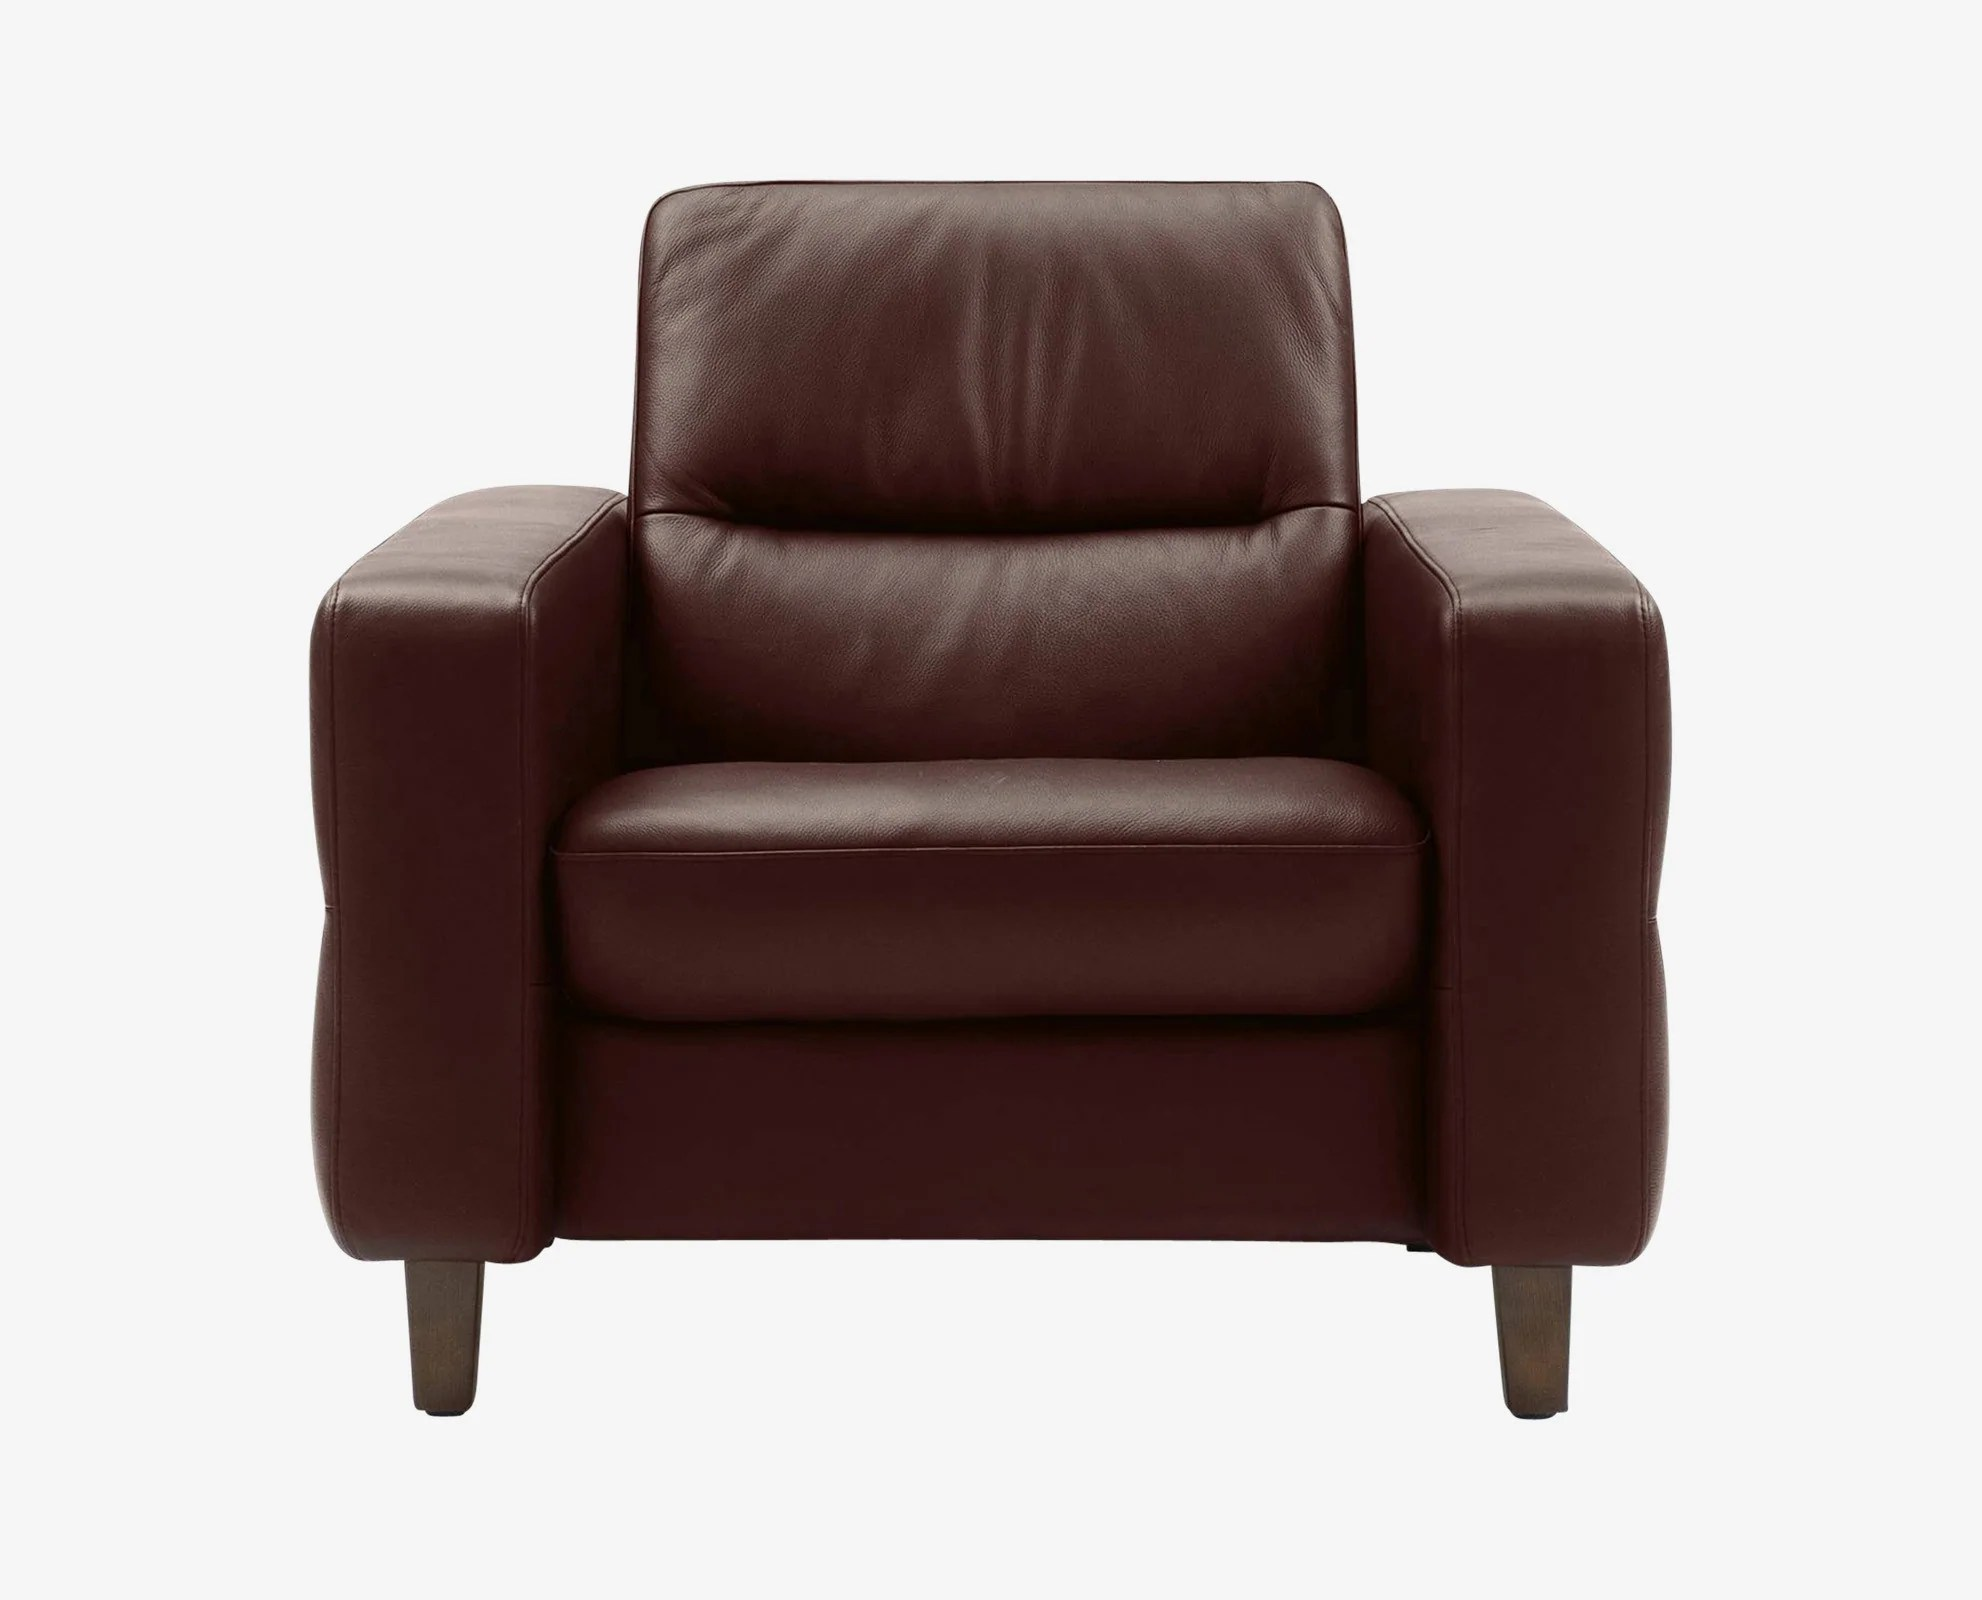 Dania Chairs Stressless Wave Low Back Chair Dania Furniture